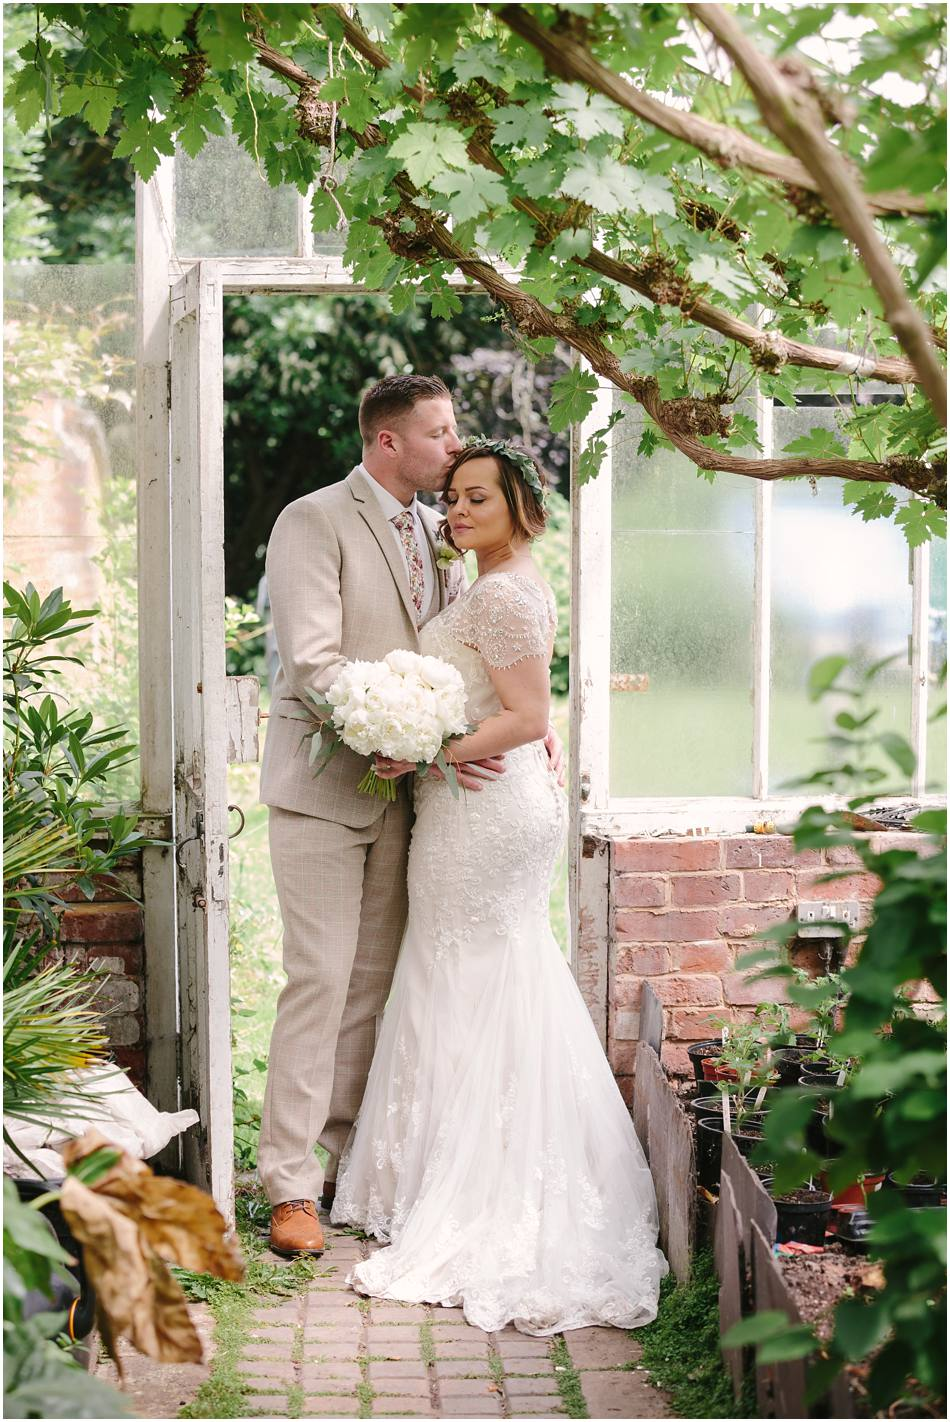 Bride with flower crown and Groom kissing in a greenhouse